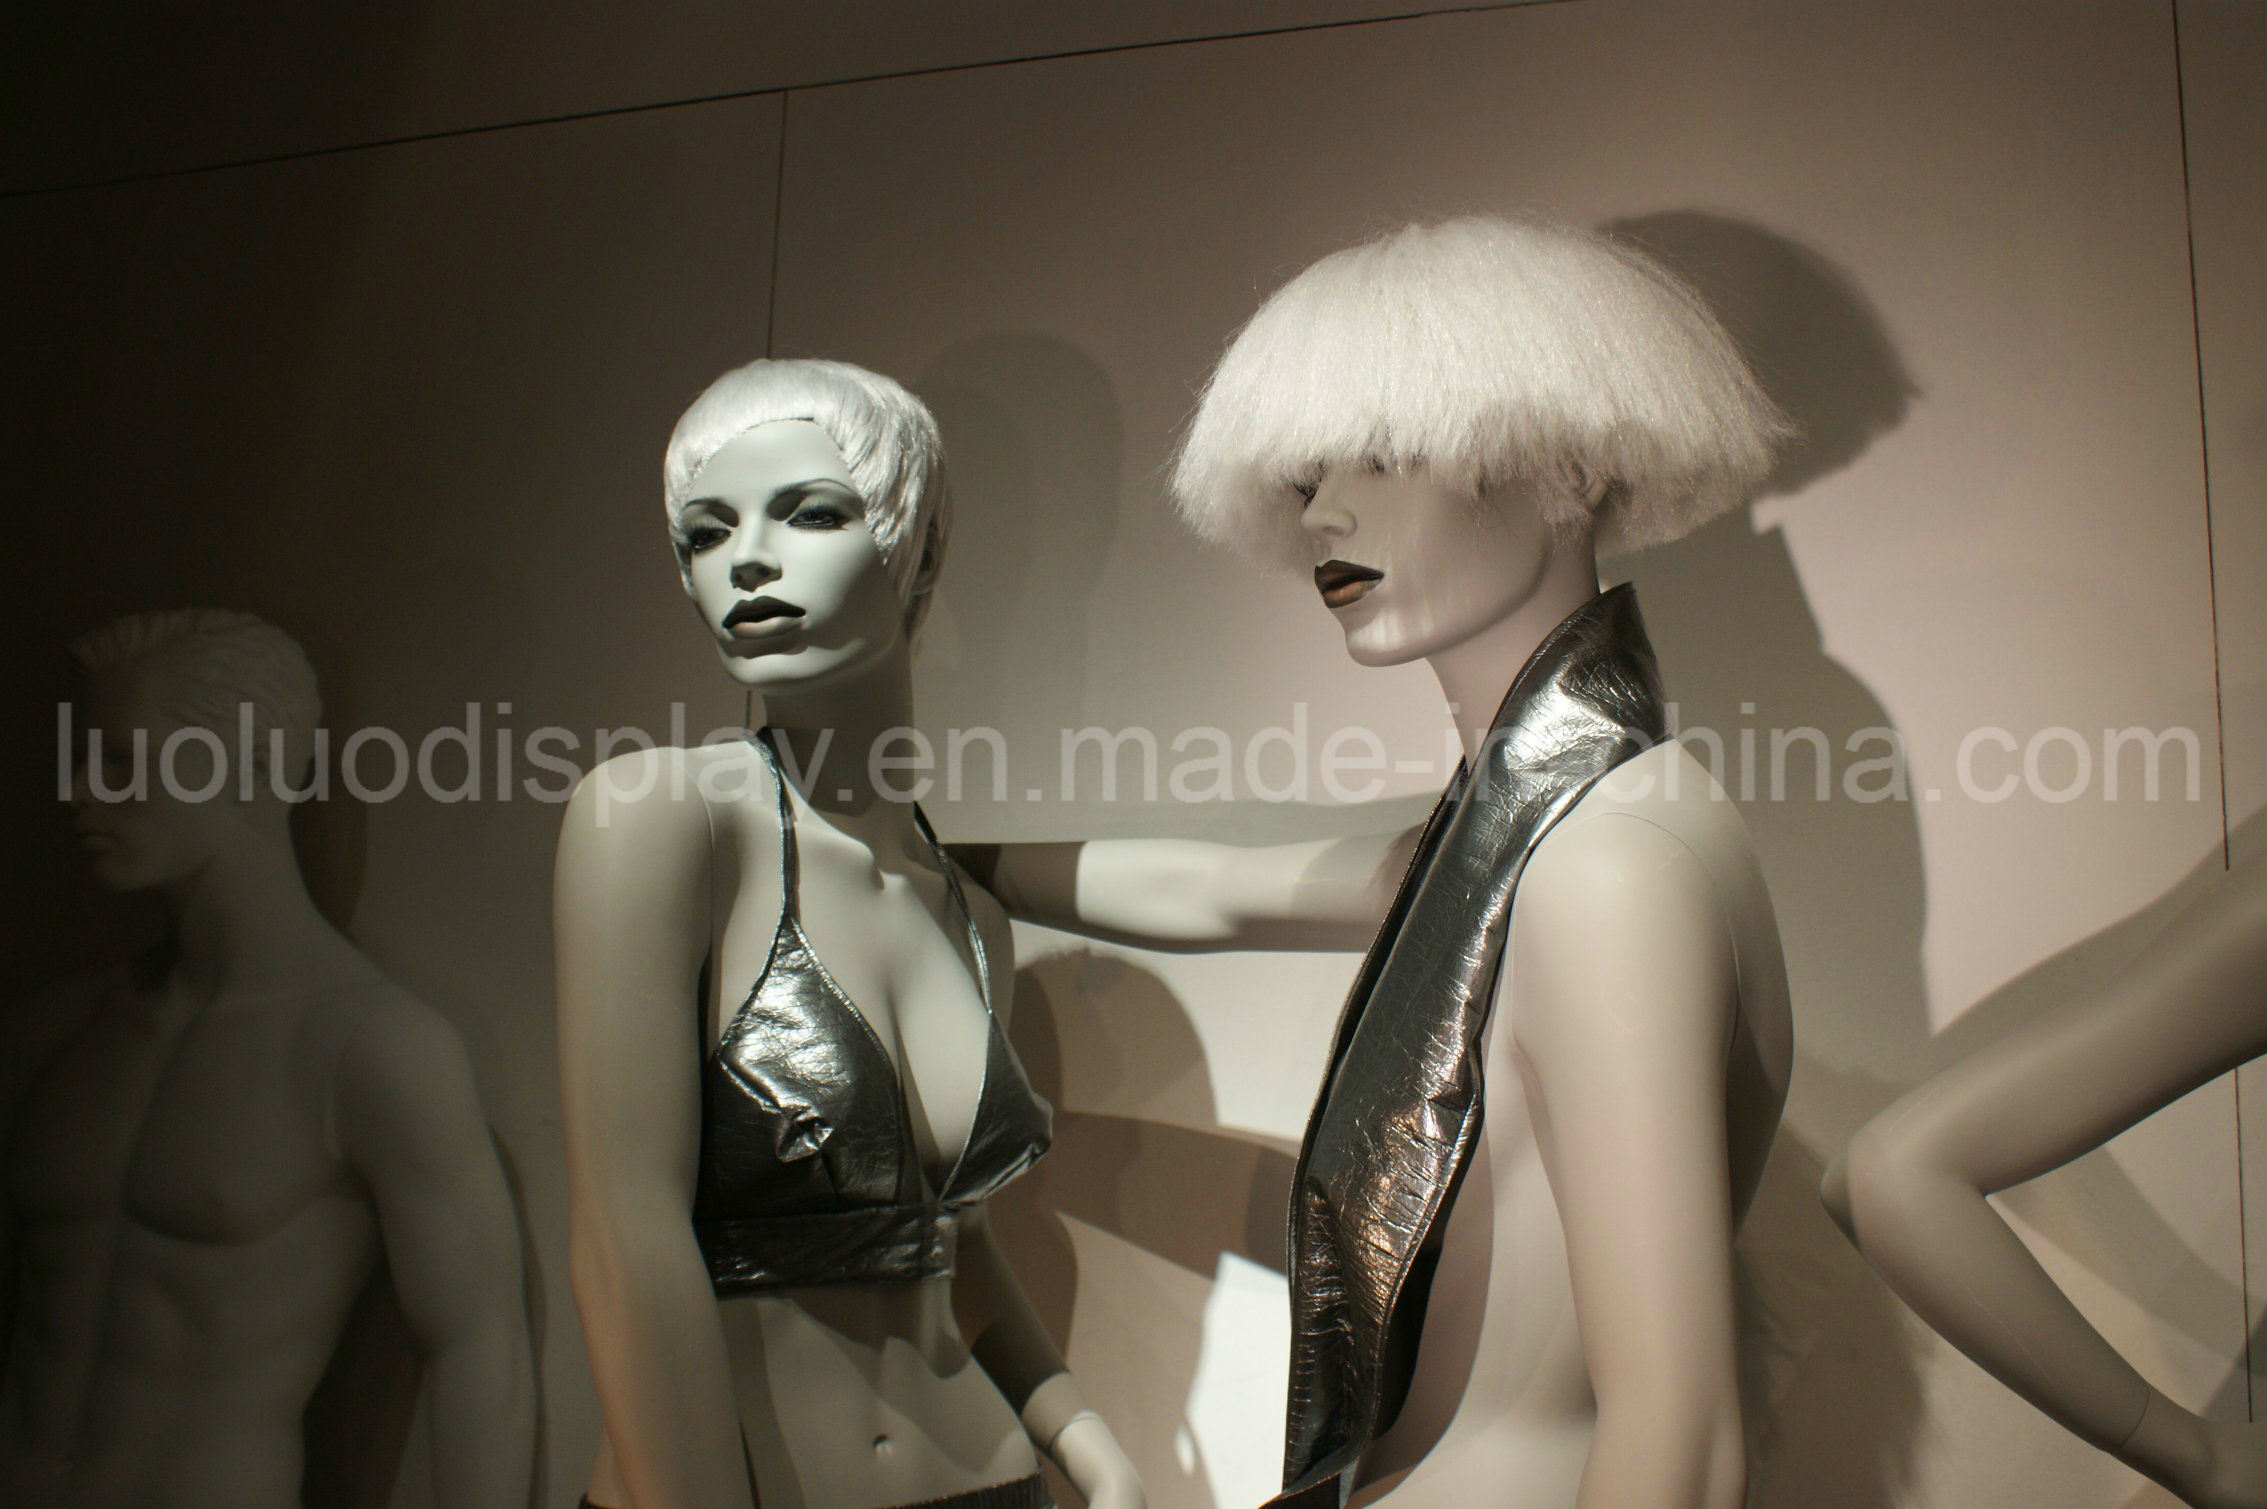 Attract Female Mannequins for Evening Dress